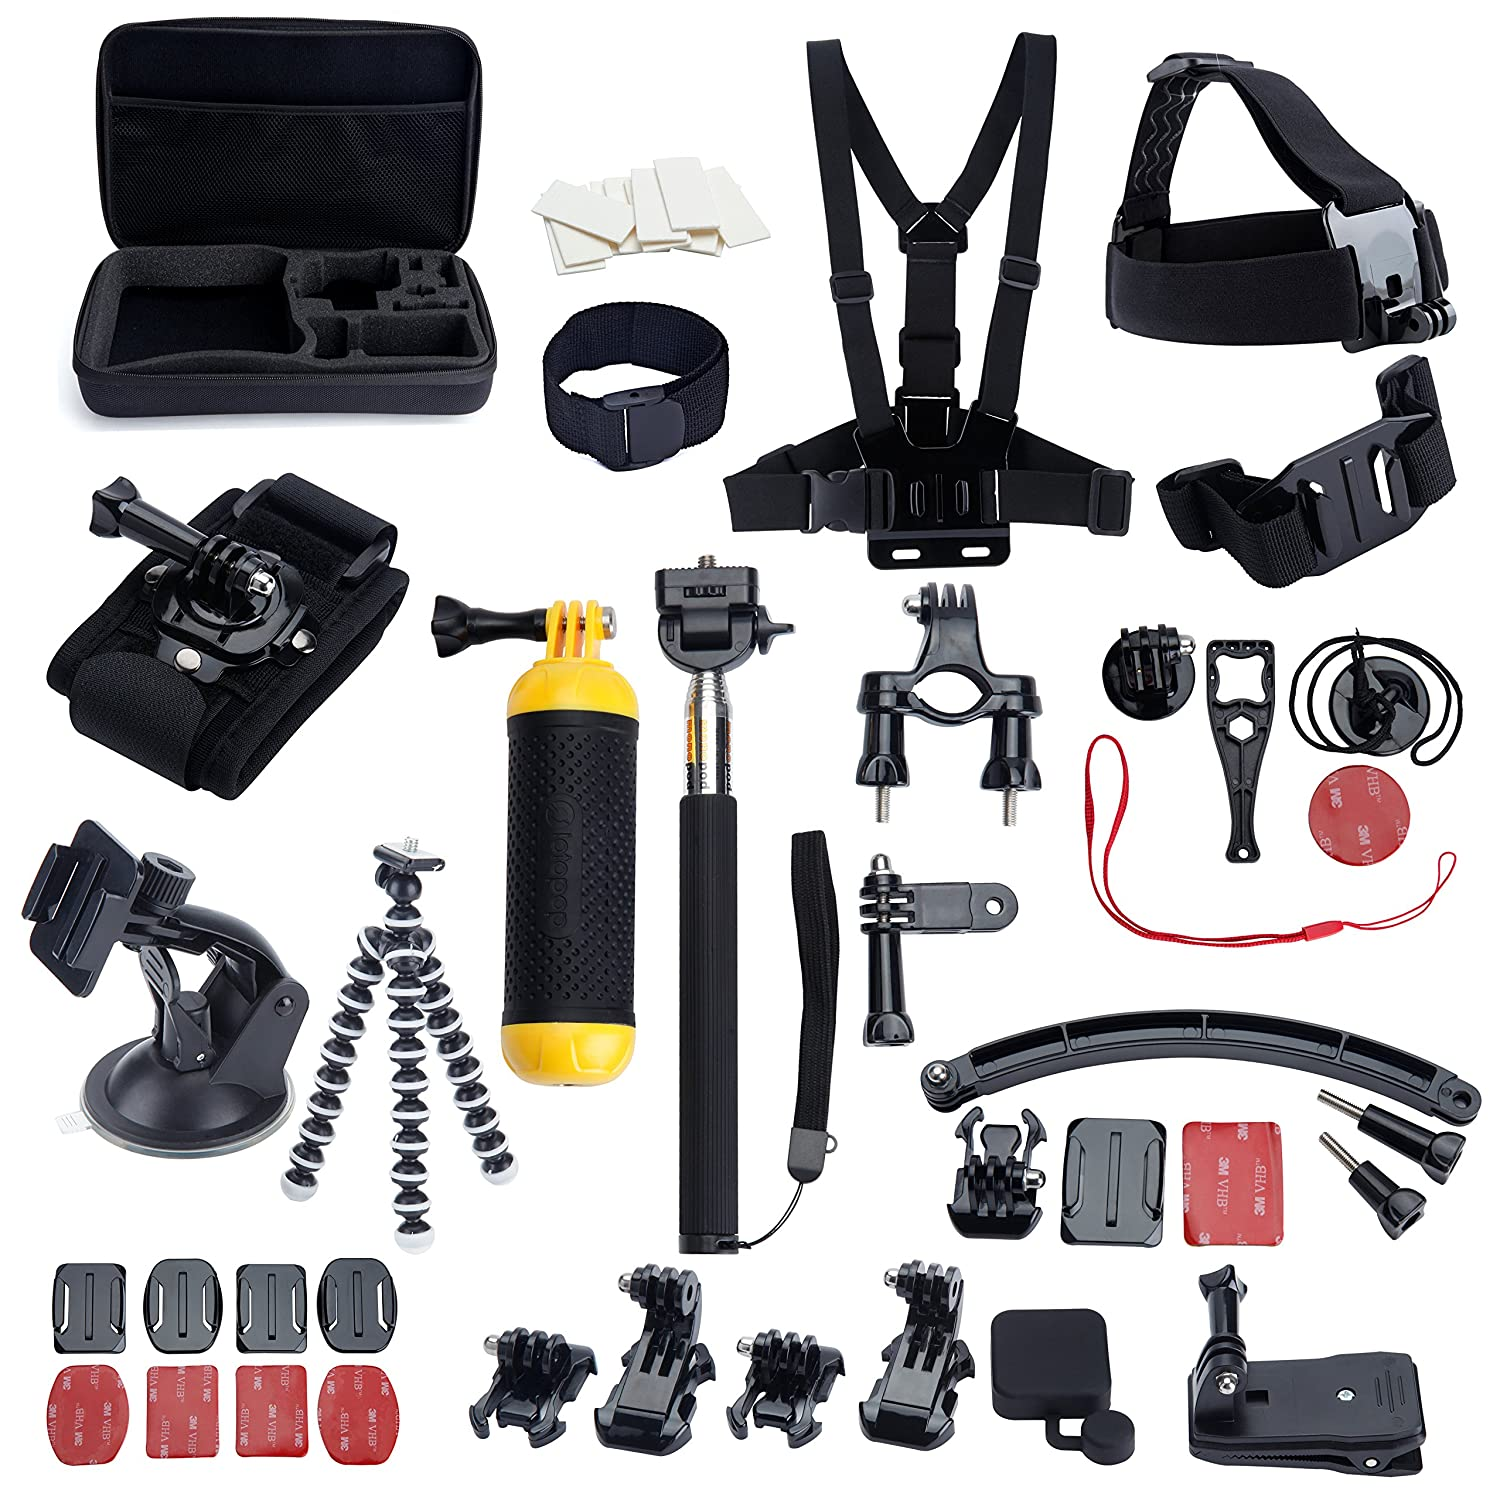 MCOCEAN Accessories Great Kit Bundle for Gopro Hero 4 Go pro Hero 3+ Hero 3 Camera for Outdoor Sports Swimming Rowing Surfing Climbing Running Bike Riding Camping Diving Outing etc